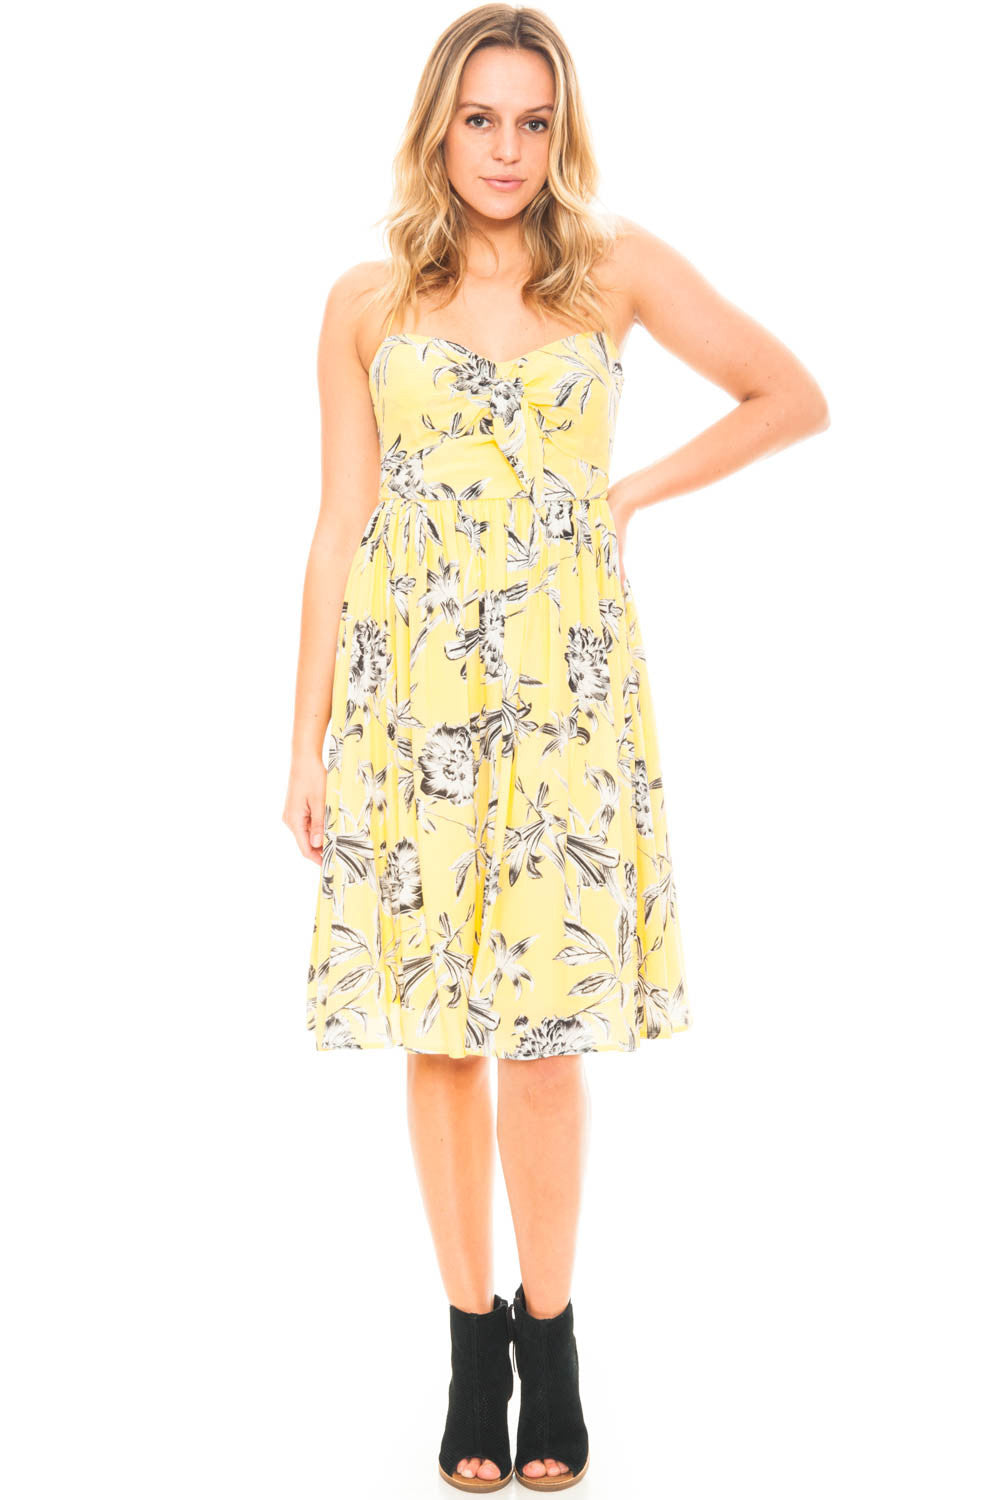 Dress - Jones by BB Dakota Halter Tie Dress